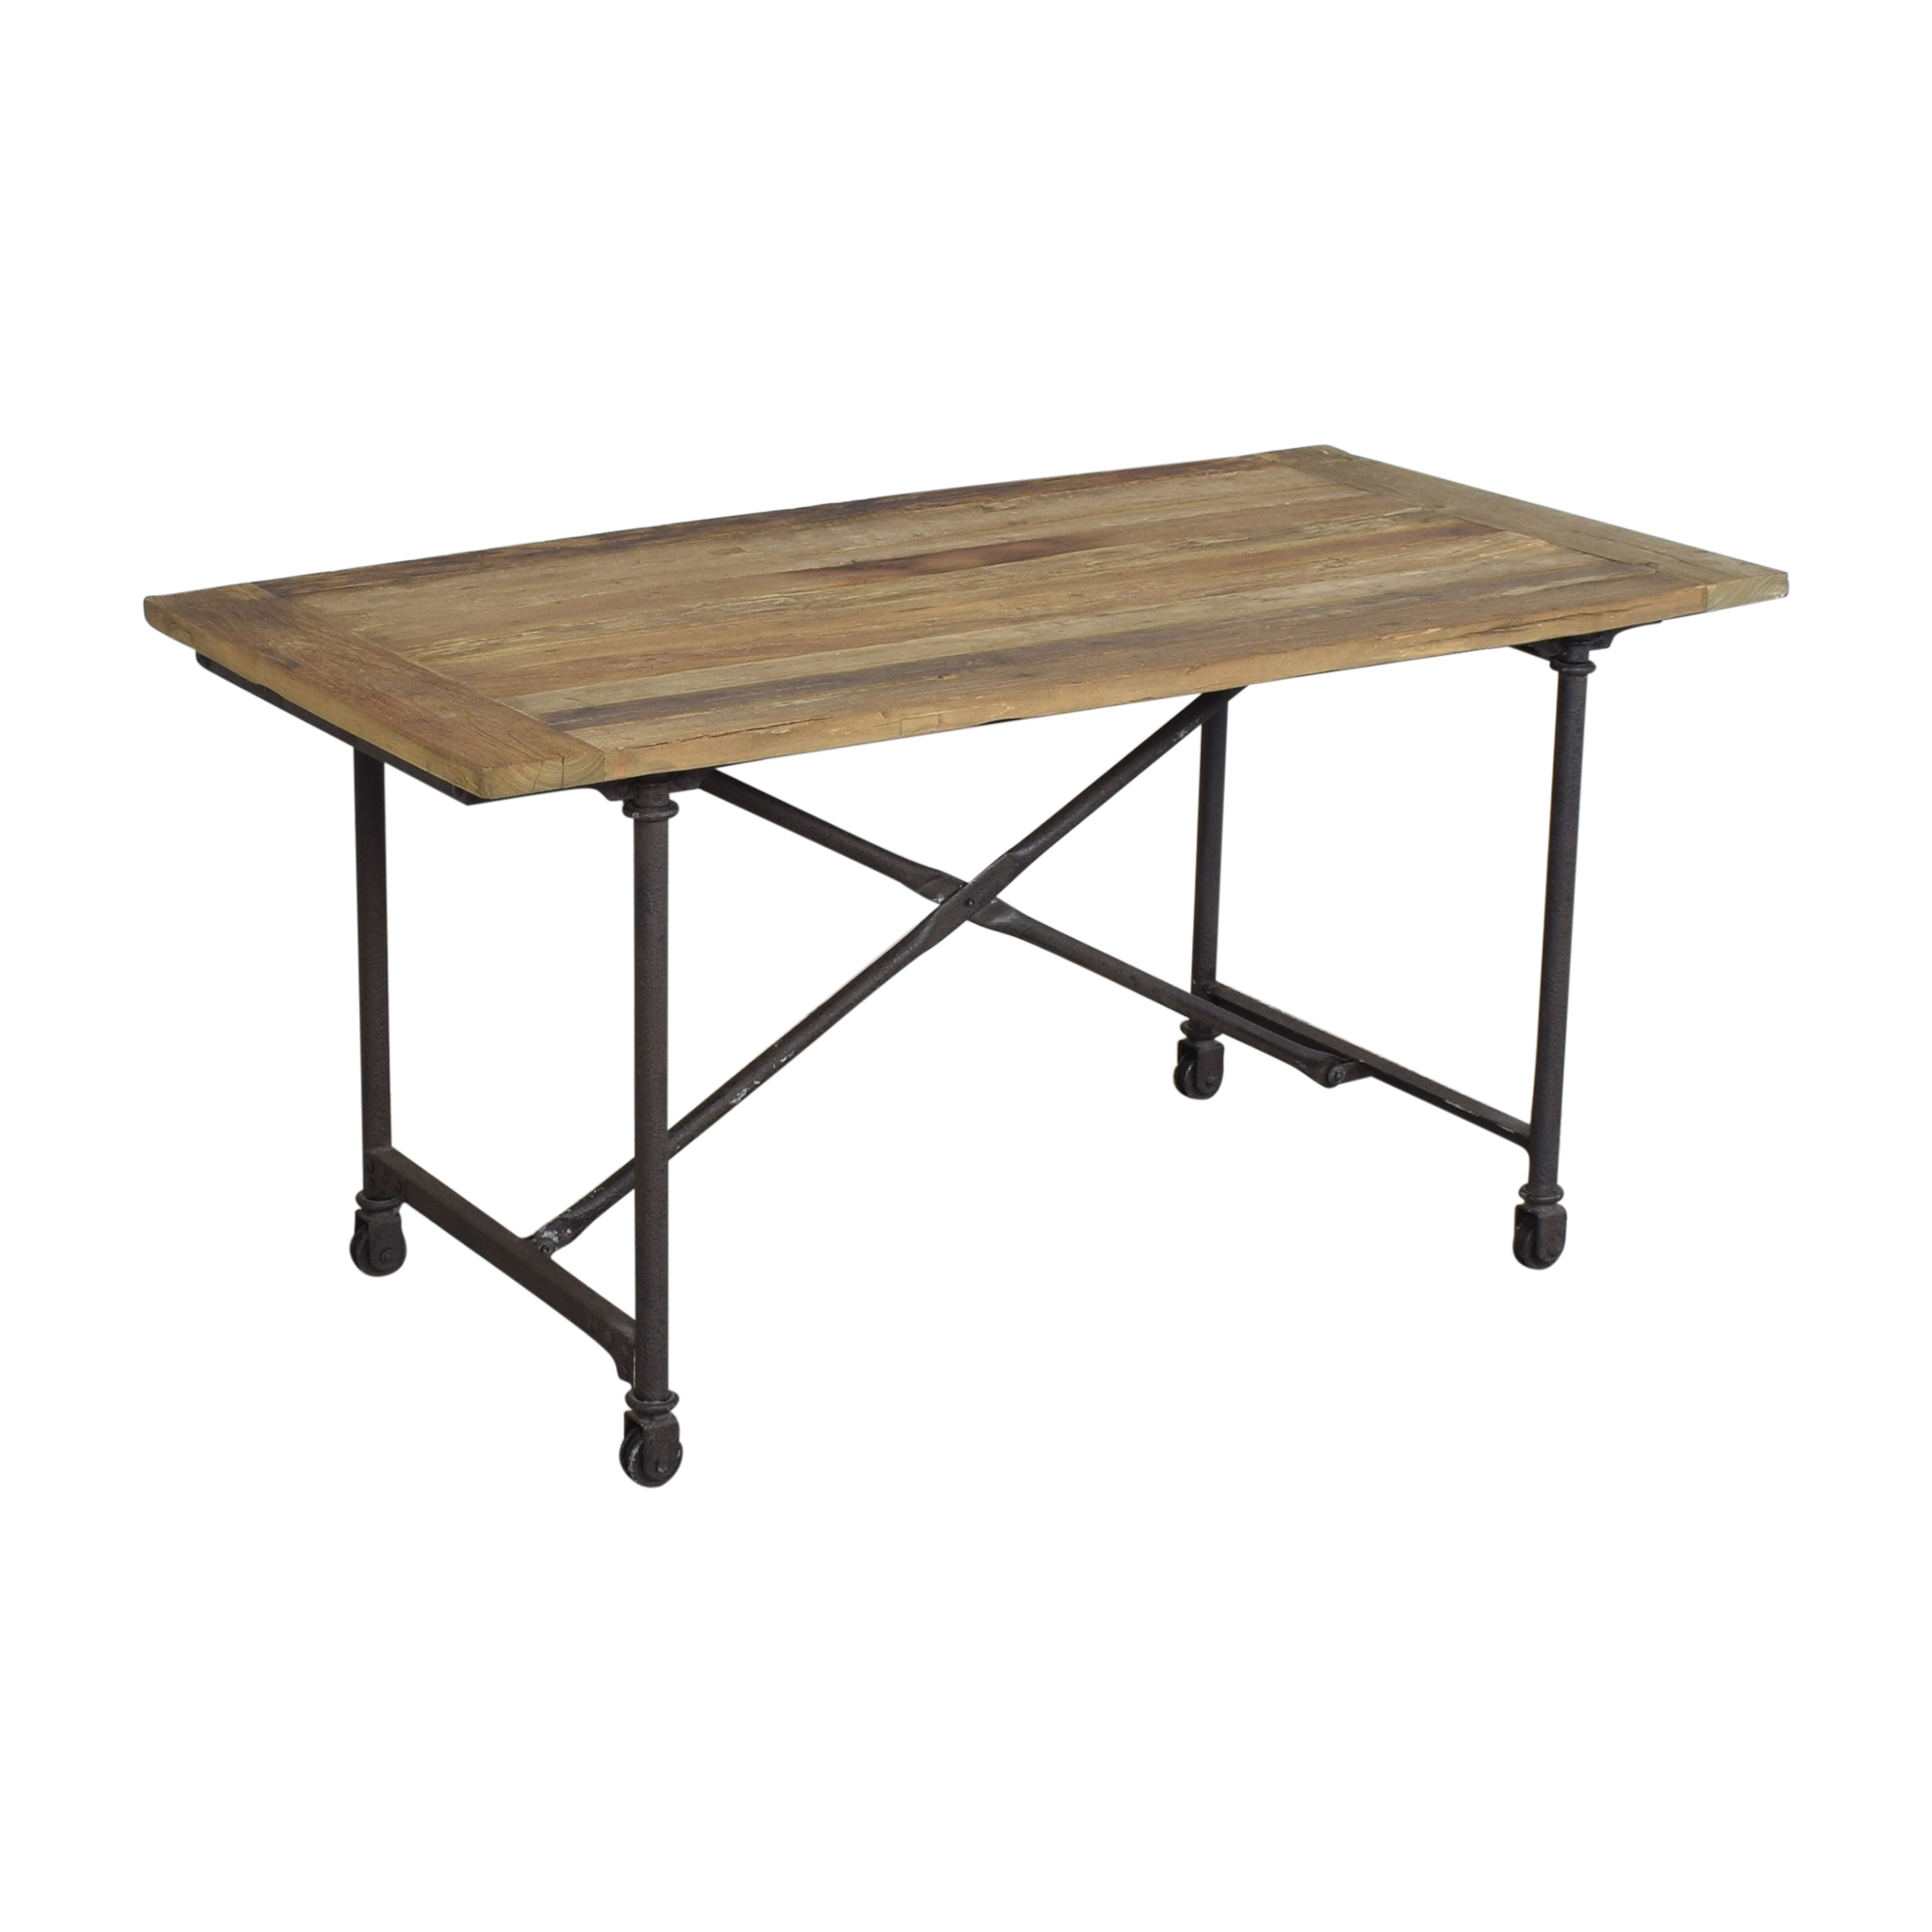 Restoration Hardware Restoration Hardware Flatiron Rectangular Dining Table brown & black